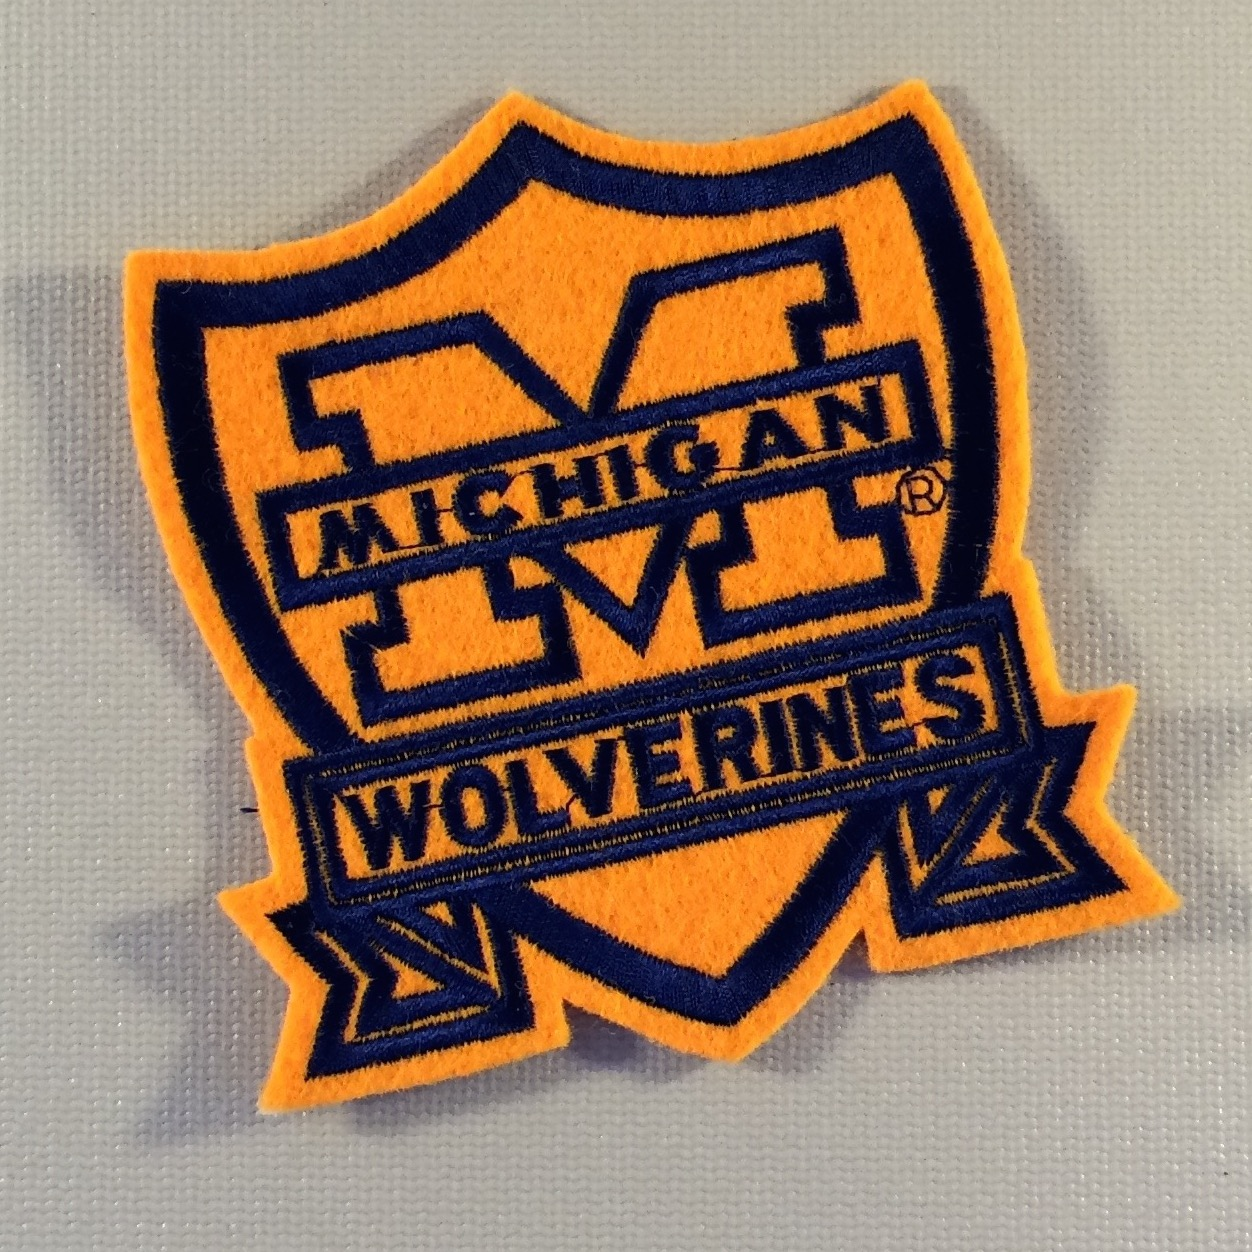 Michigan Wolverines Patch